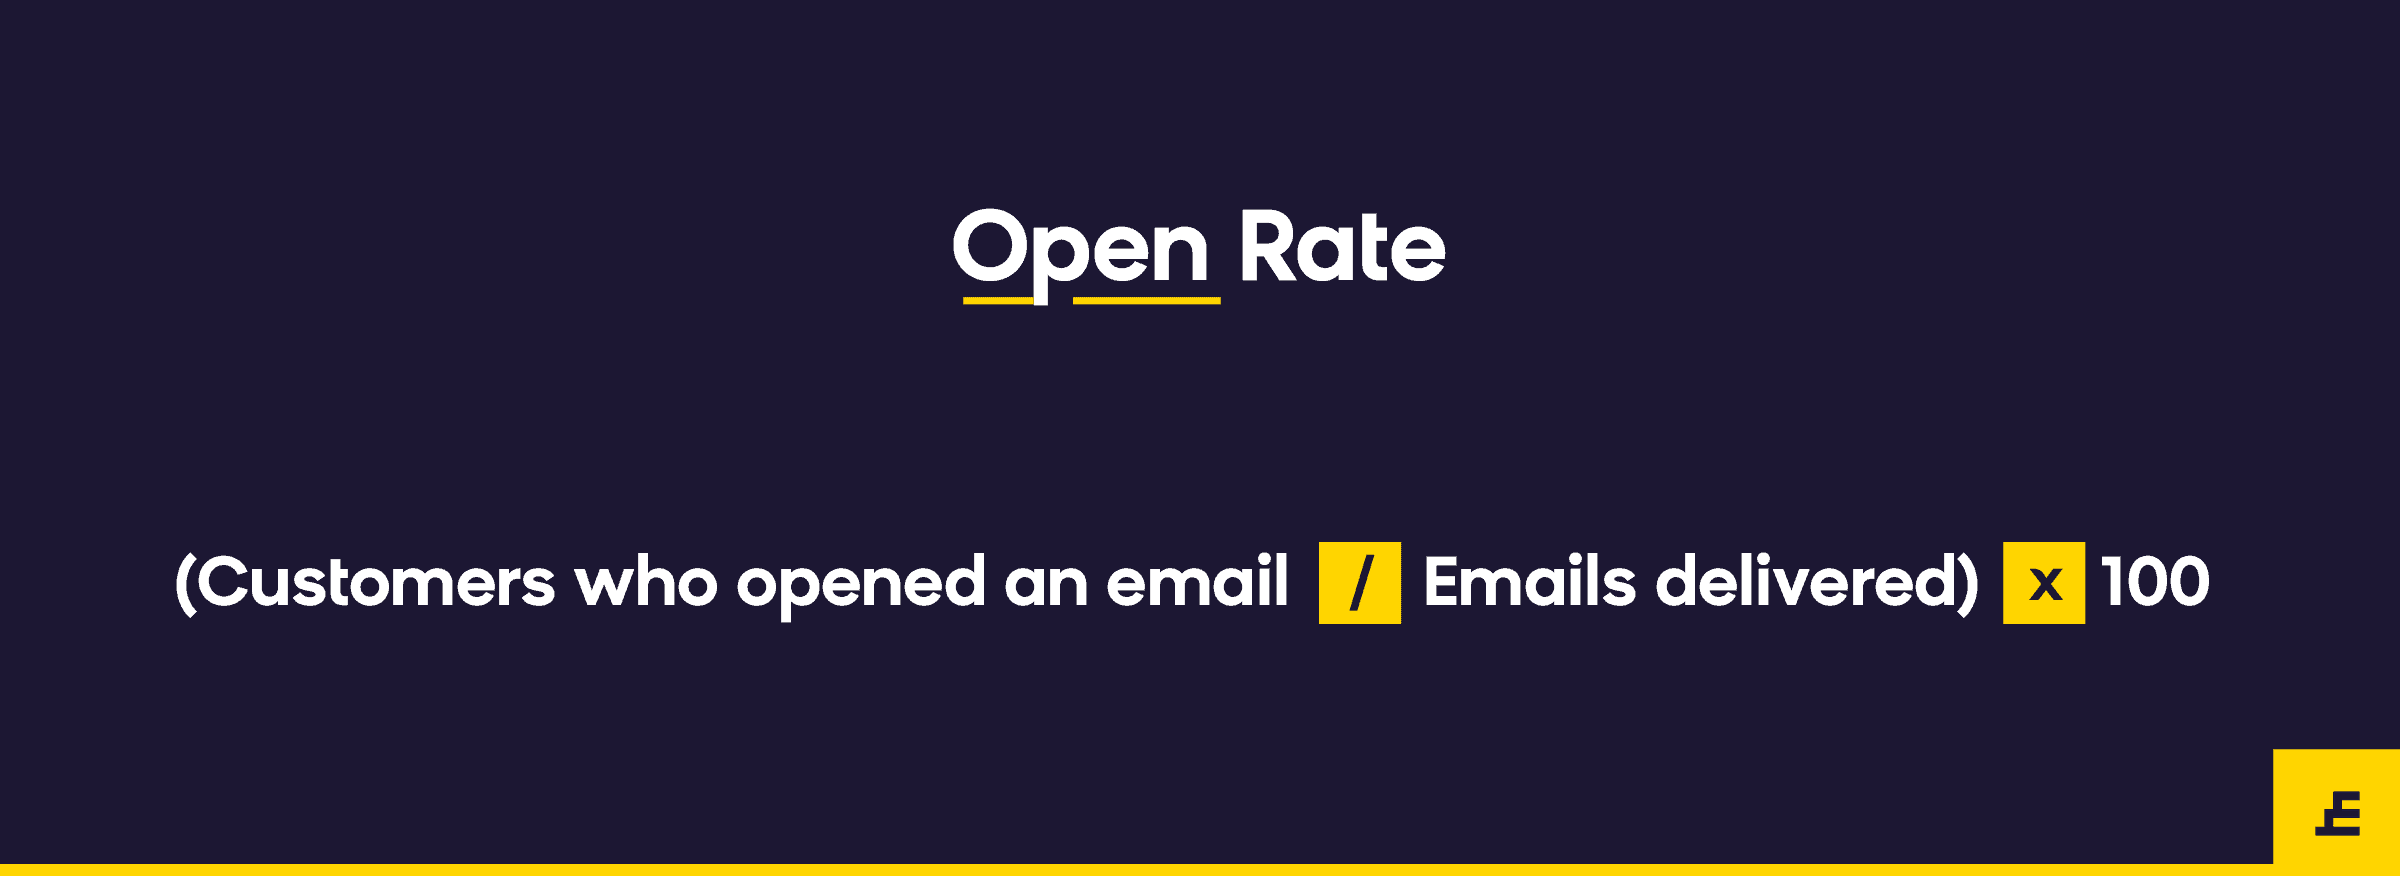 email marketing metric - open rate